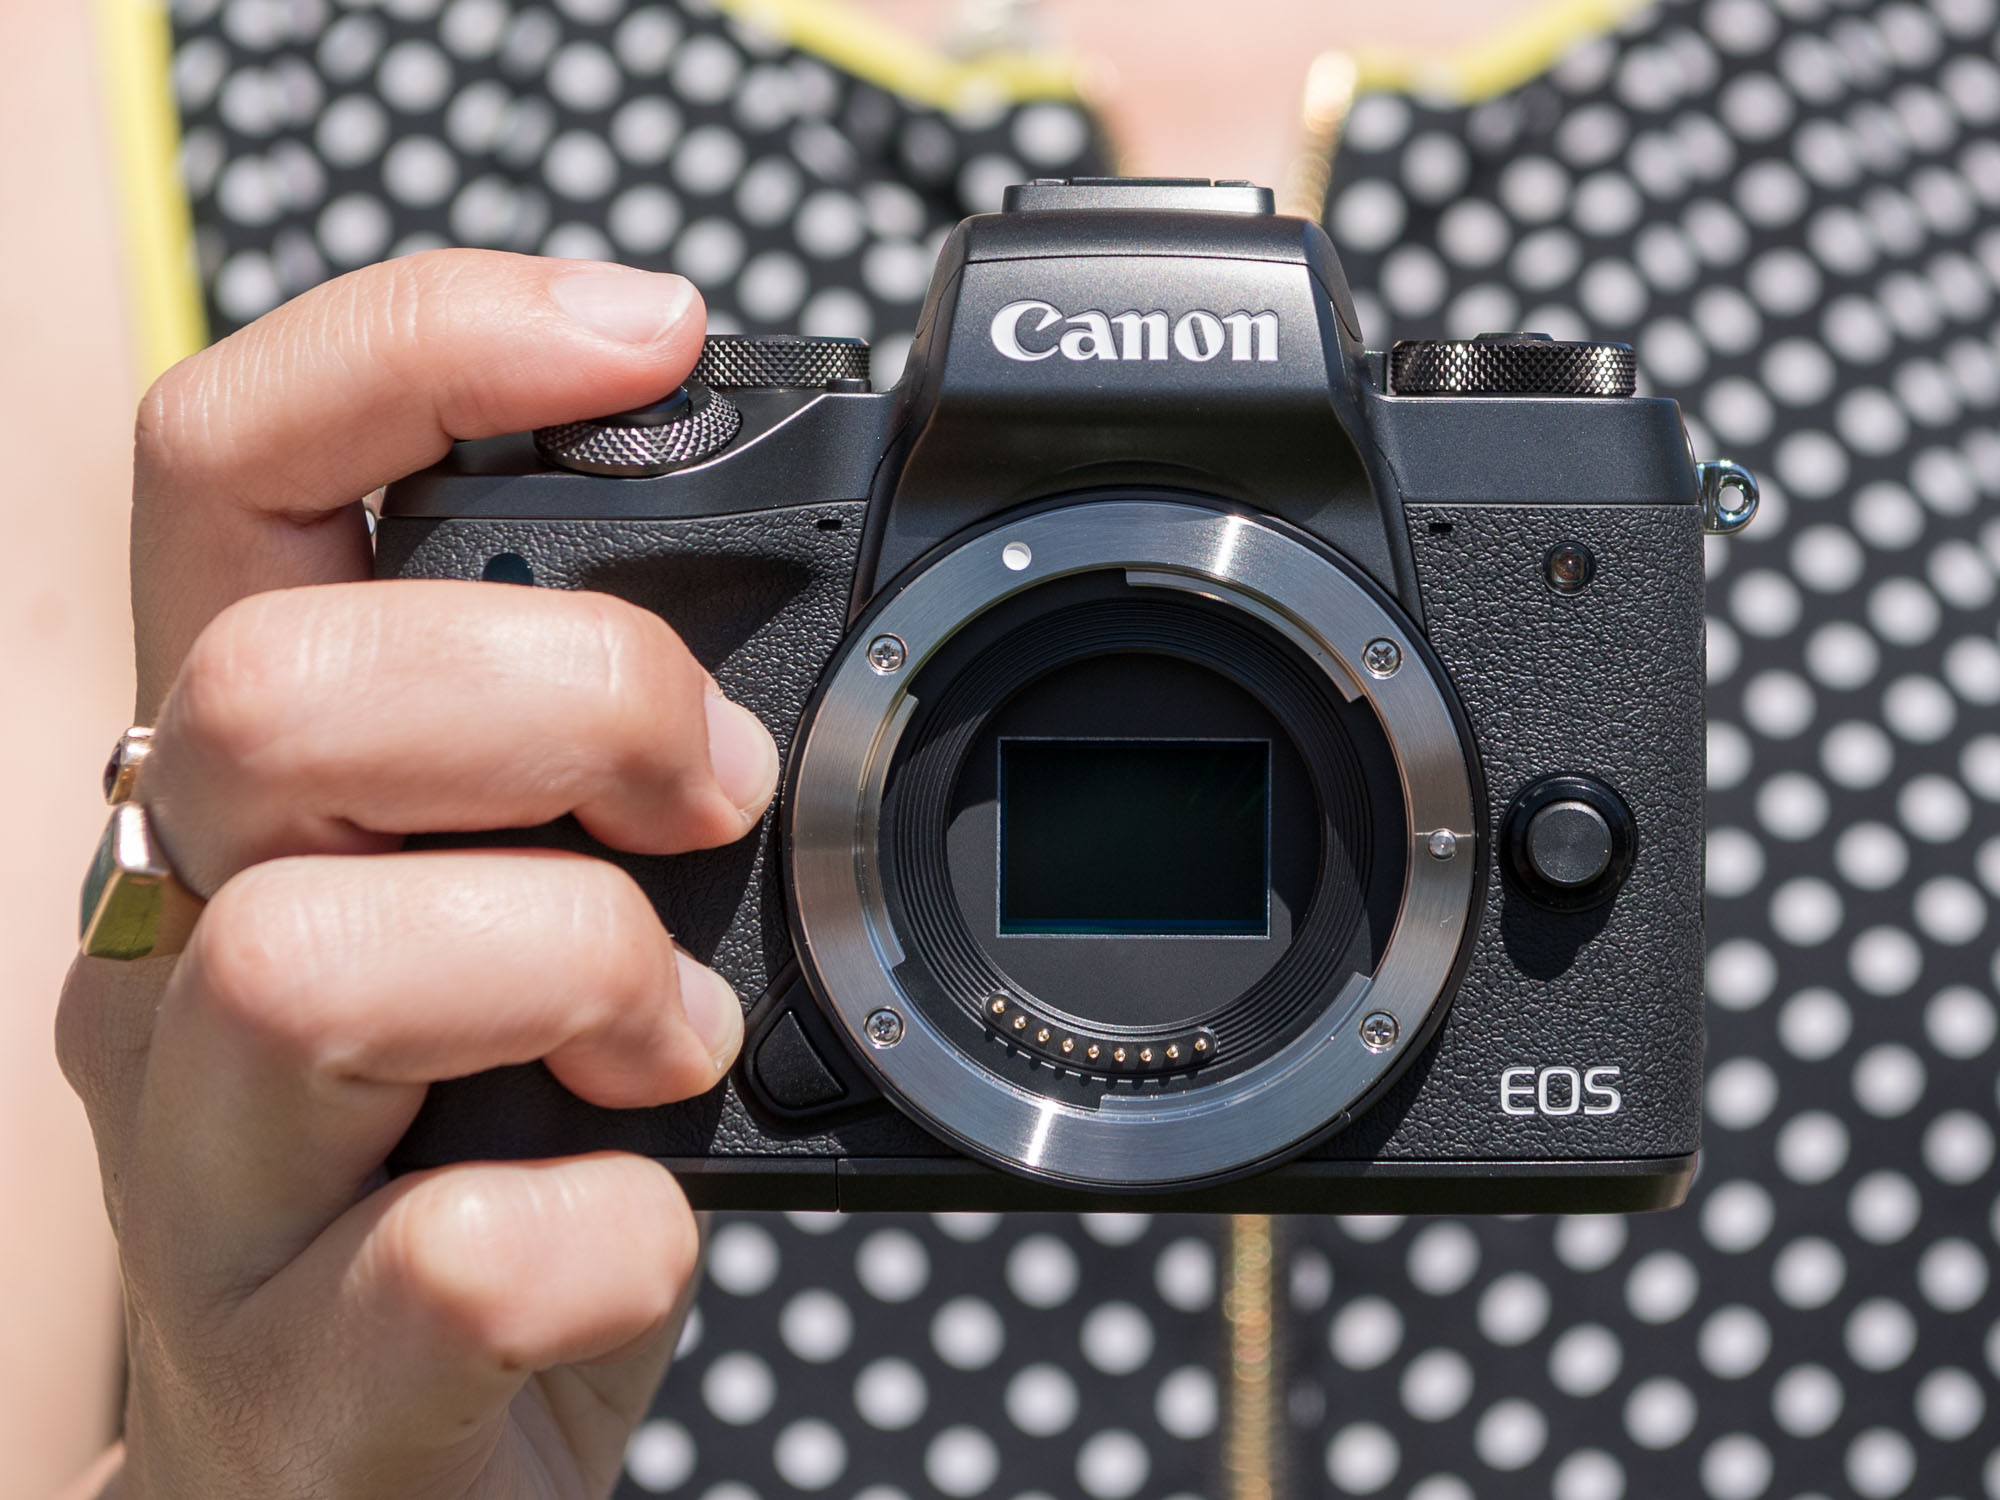 teofilo canon eos m5 what you need to know